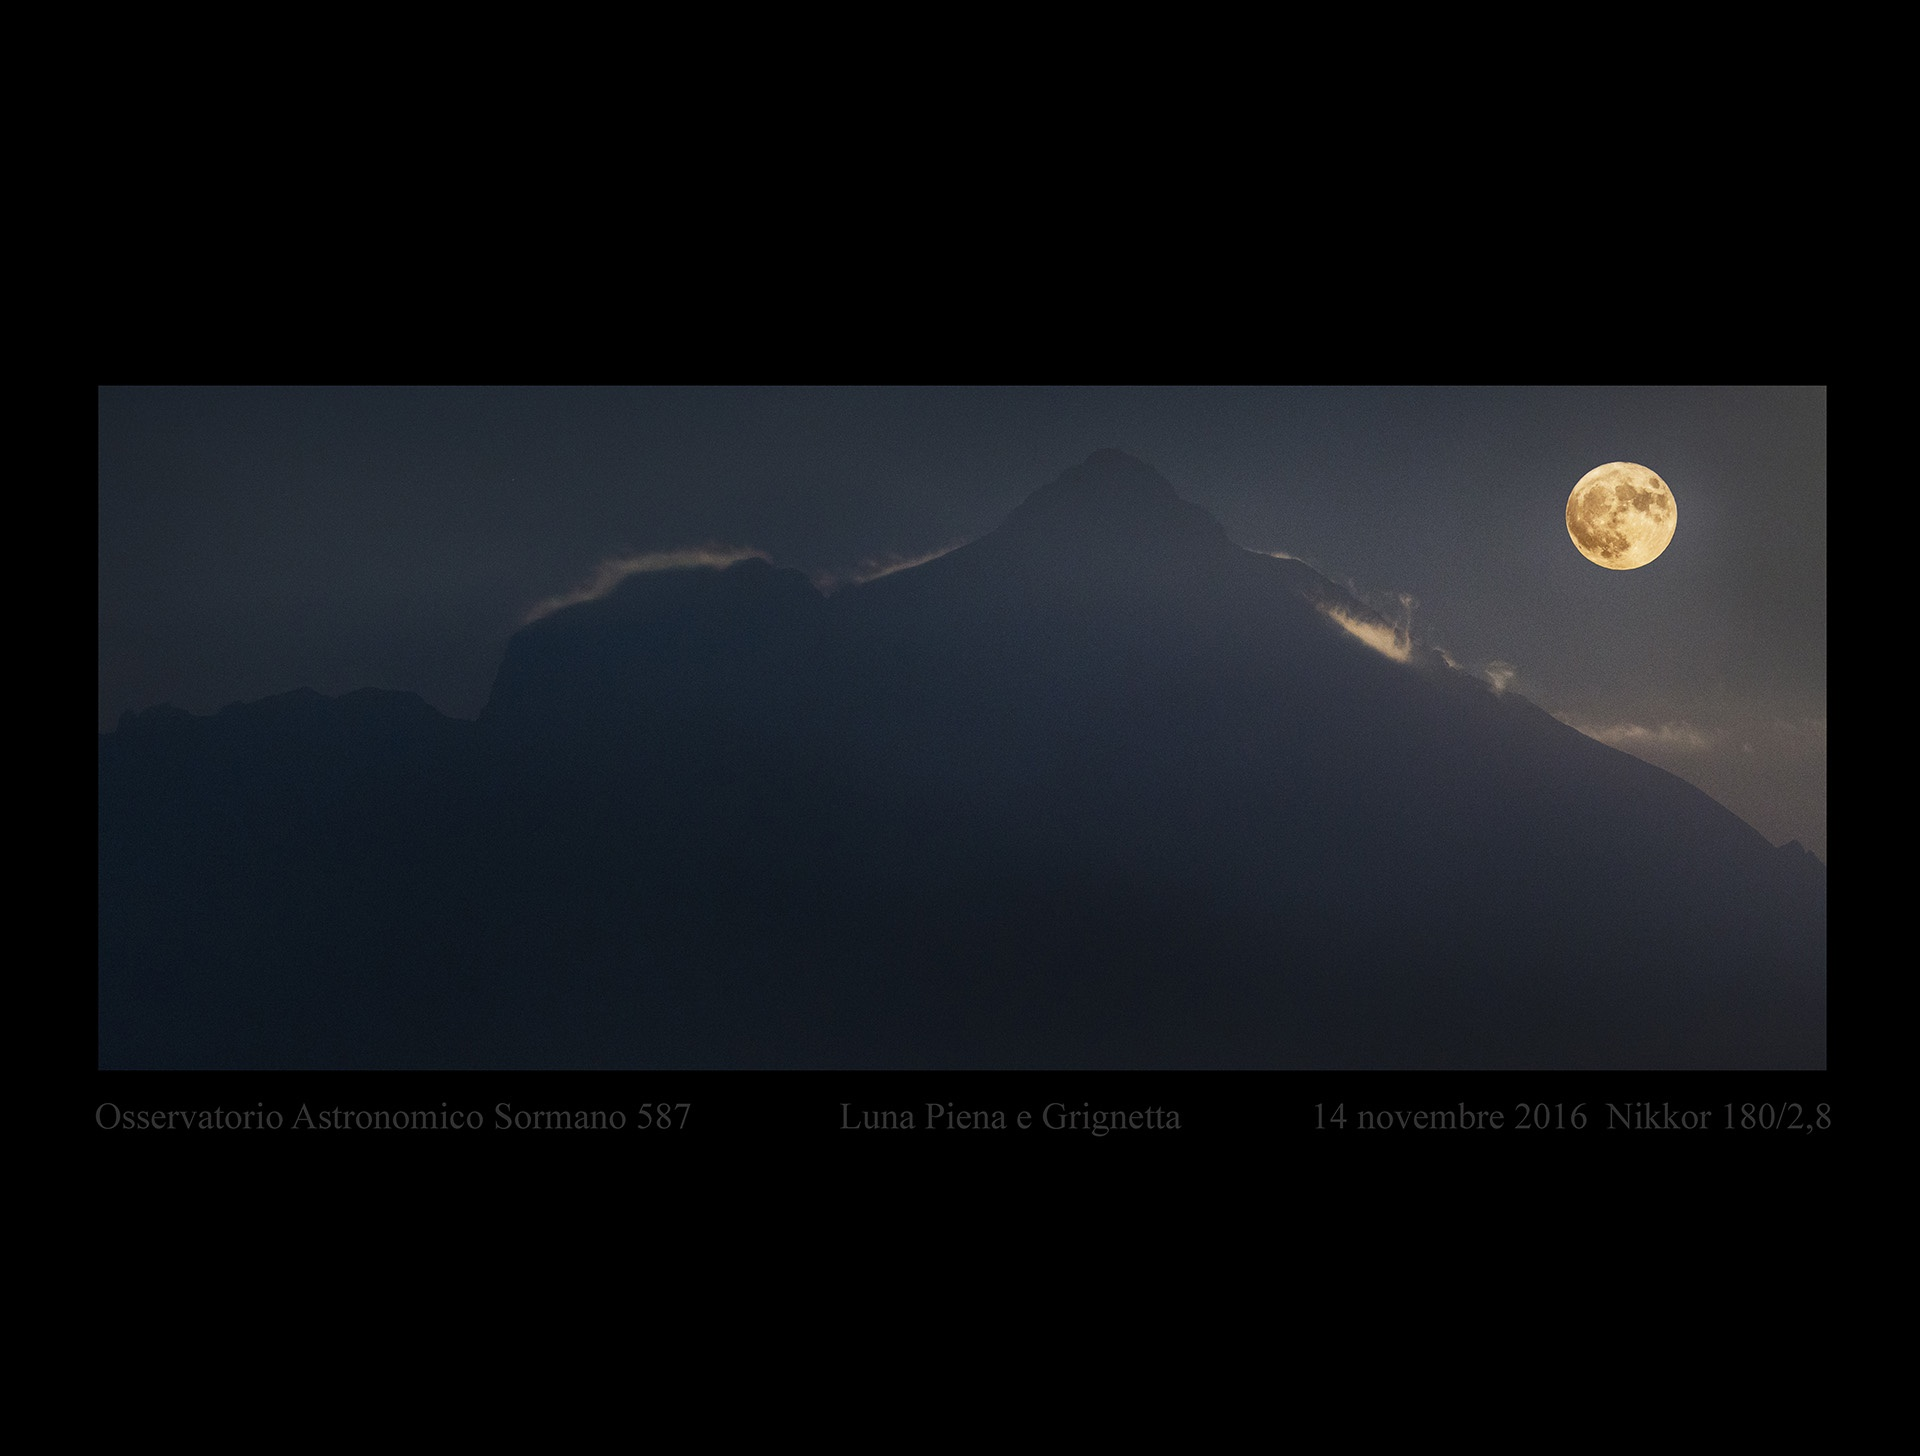 La supersupersuperluna del 14 novembre 2016